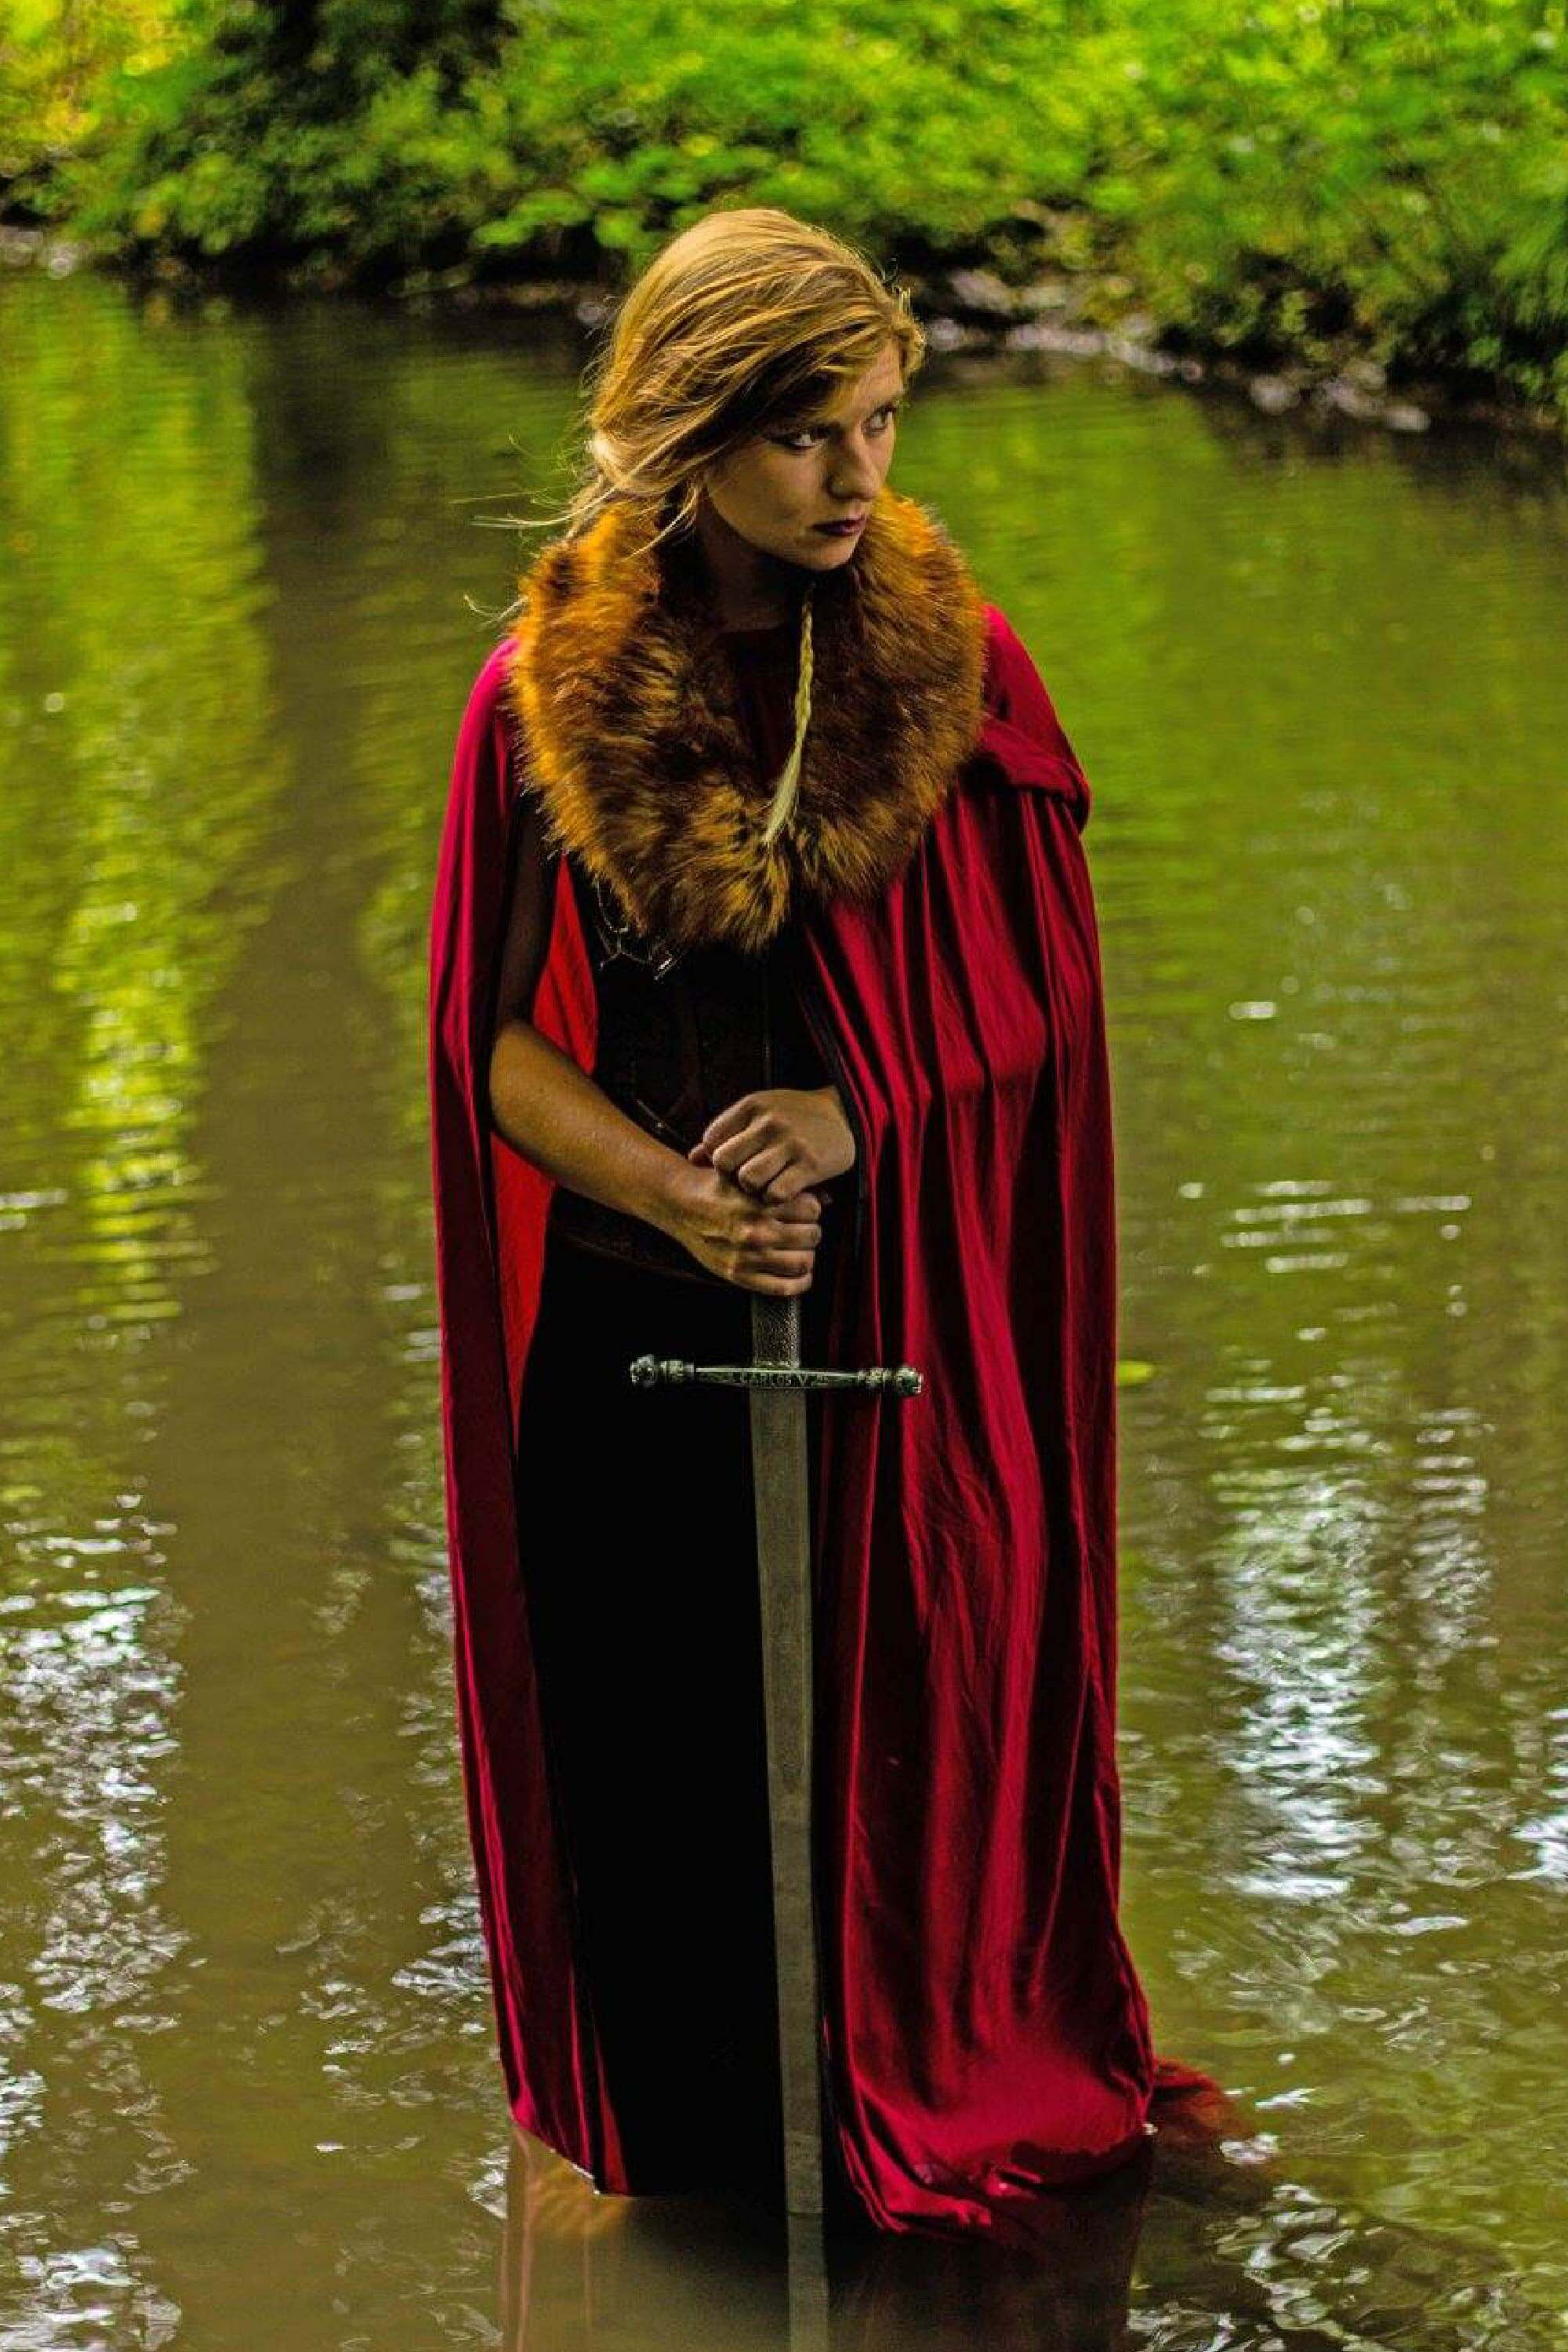 Woman in a red cloak holds a sword in a river